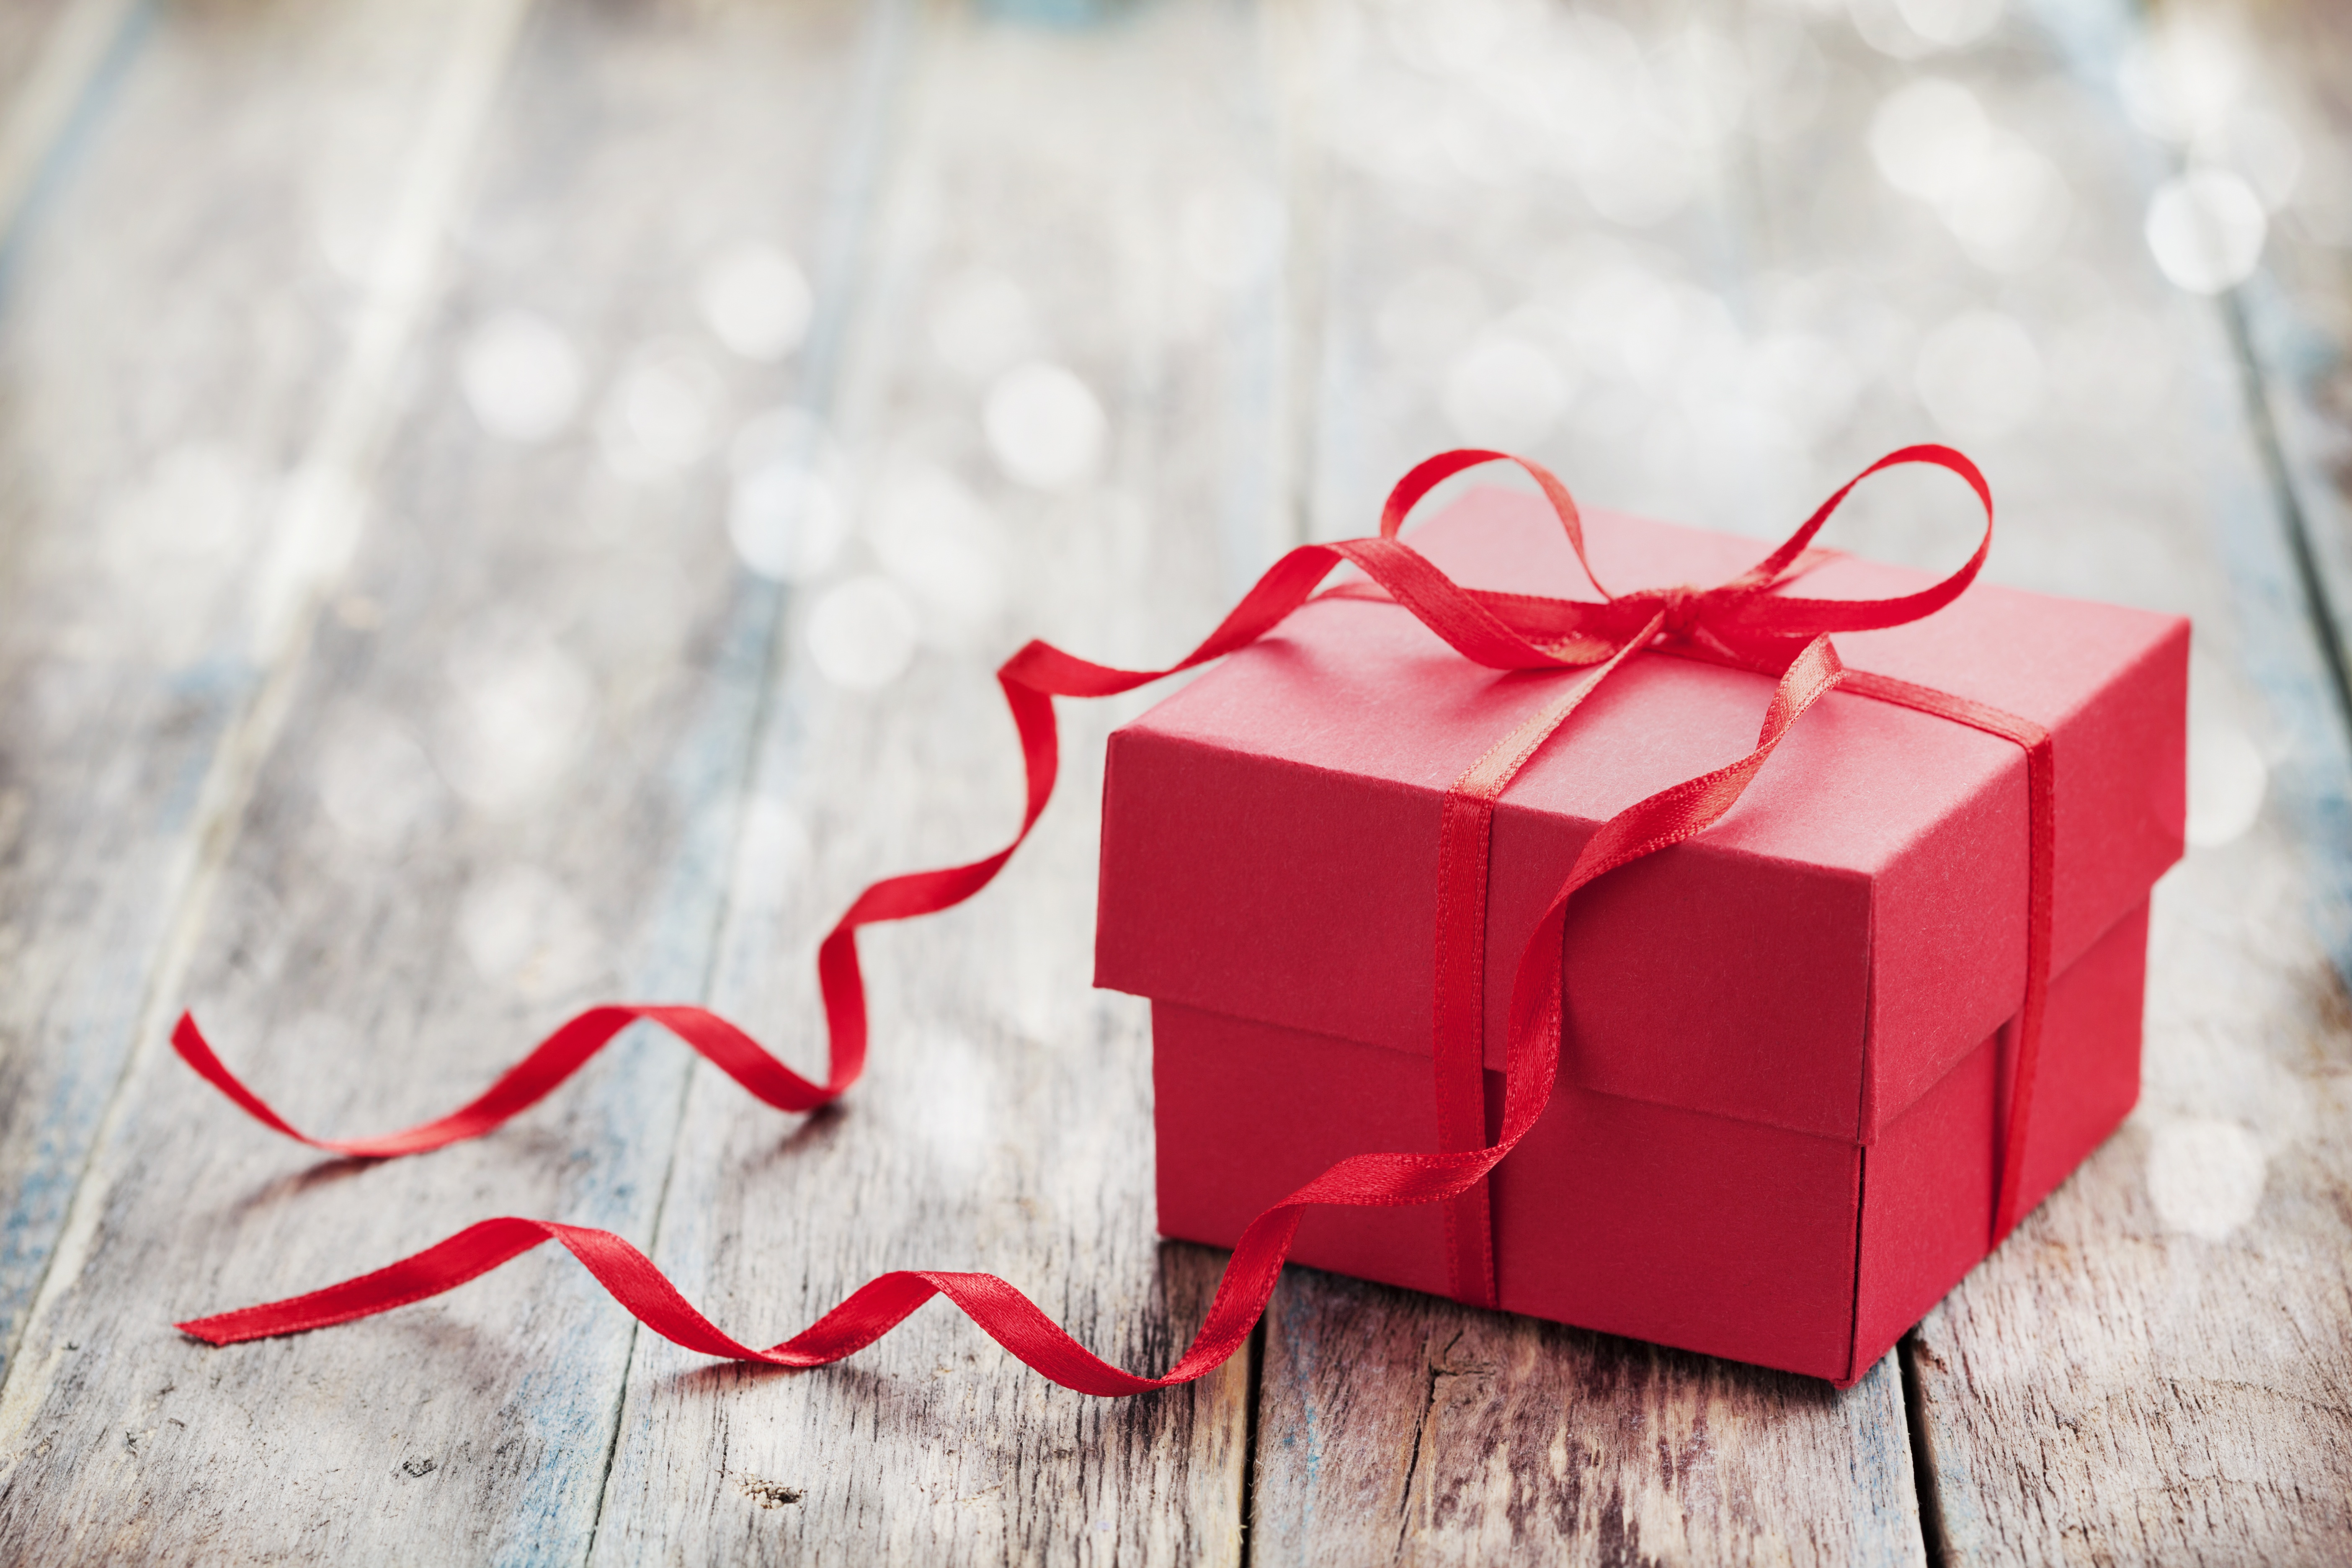 Gift Certificates for the Gift of Health